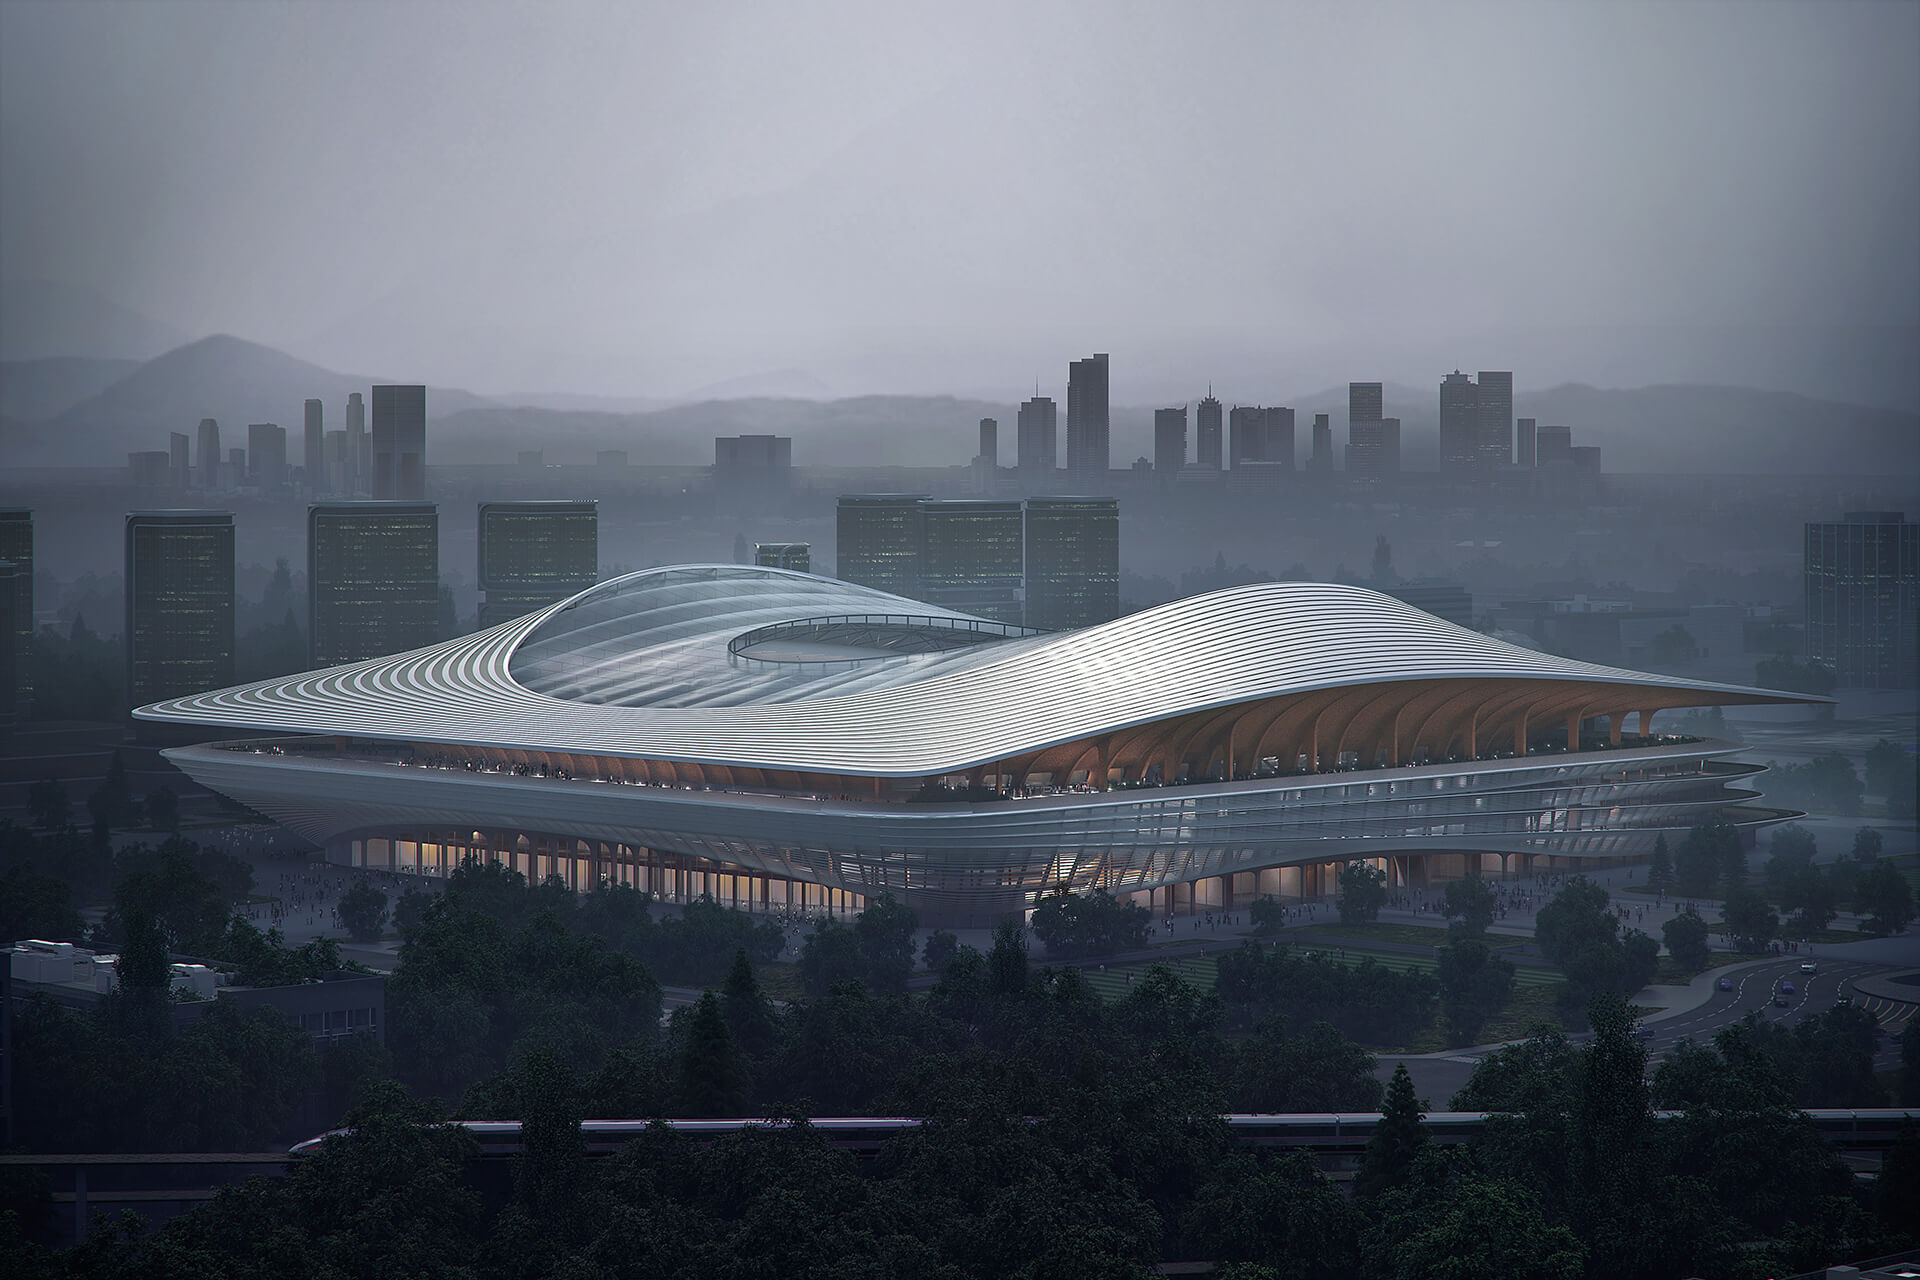 A digitally designed saddle shape has been generated for this project | Xi'an International Football Center | Zaha Hadid Architects | STIRworld